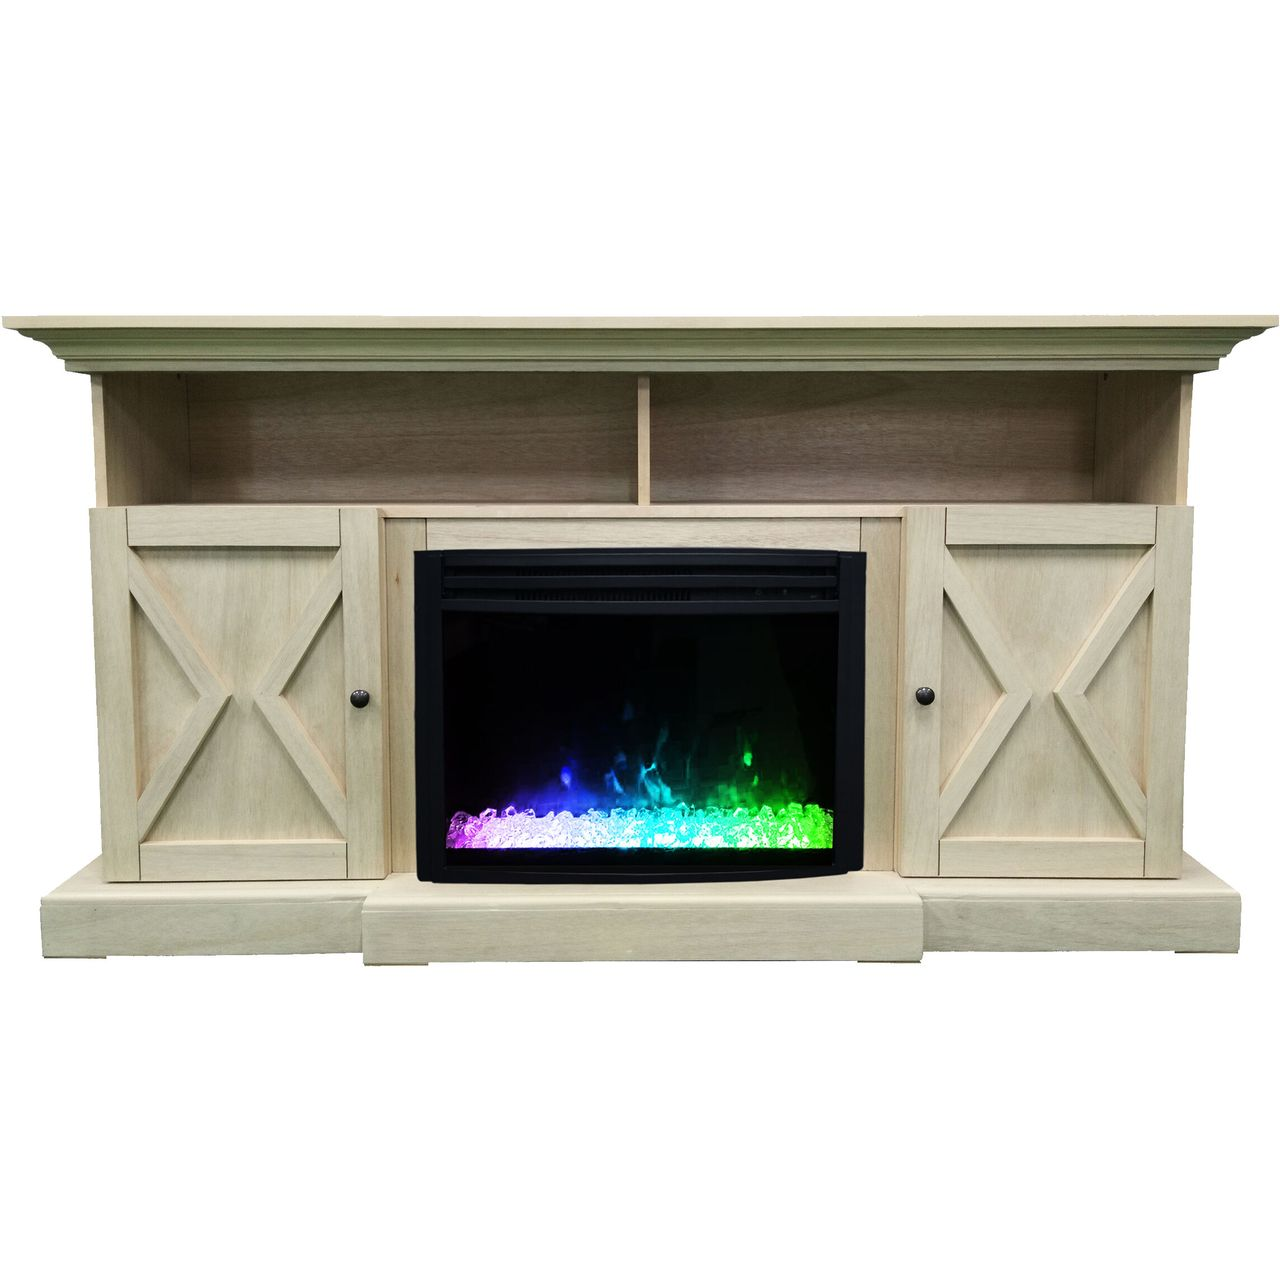 "Cambridge 62"" Summit Electric Fireplace Mantel - Sandstone"